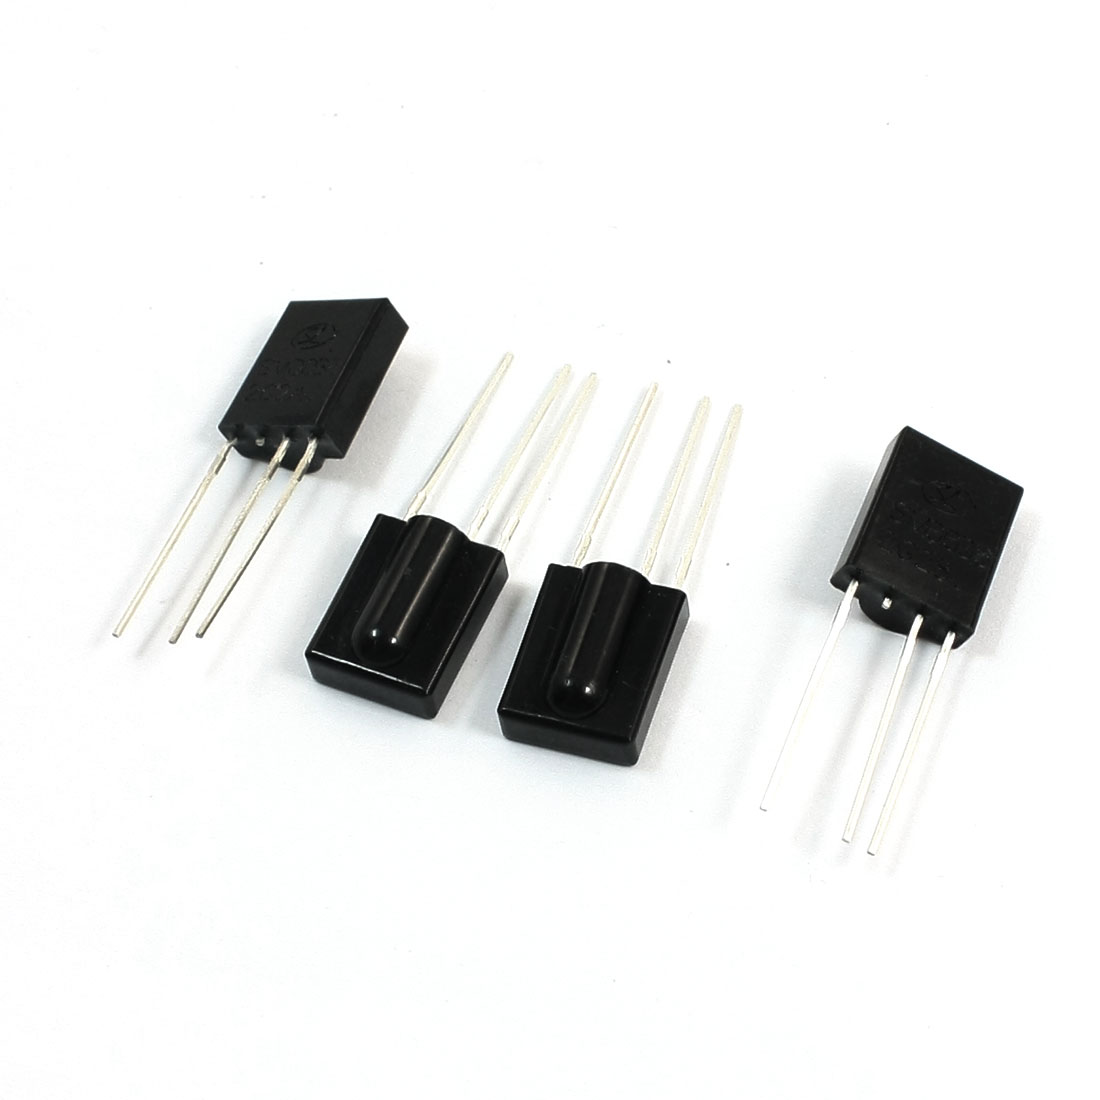 SM0038 3-Pin GND Vs Vout Infrared IR Receiver Module 250mV 4 Pcs